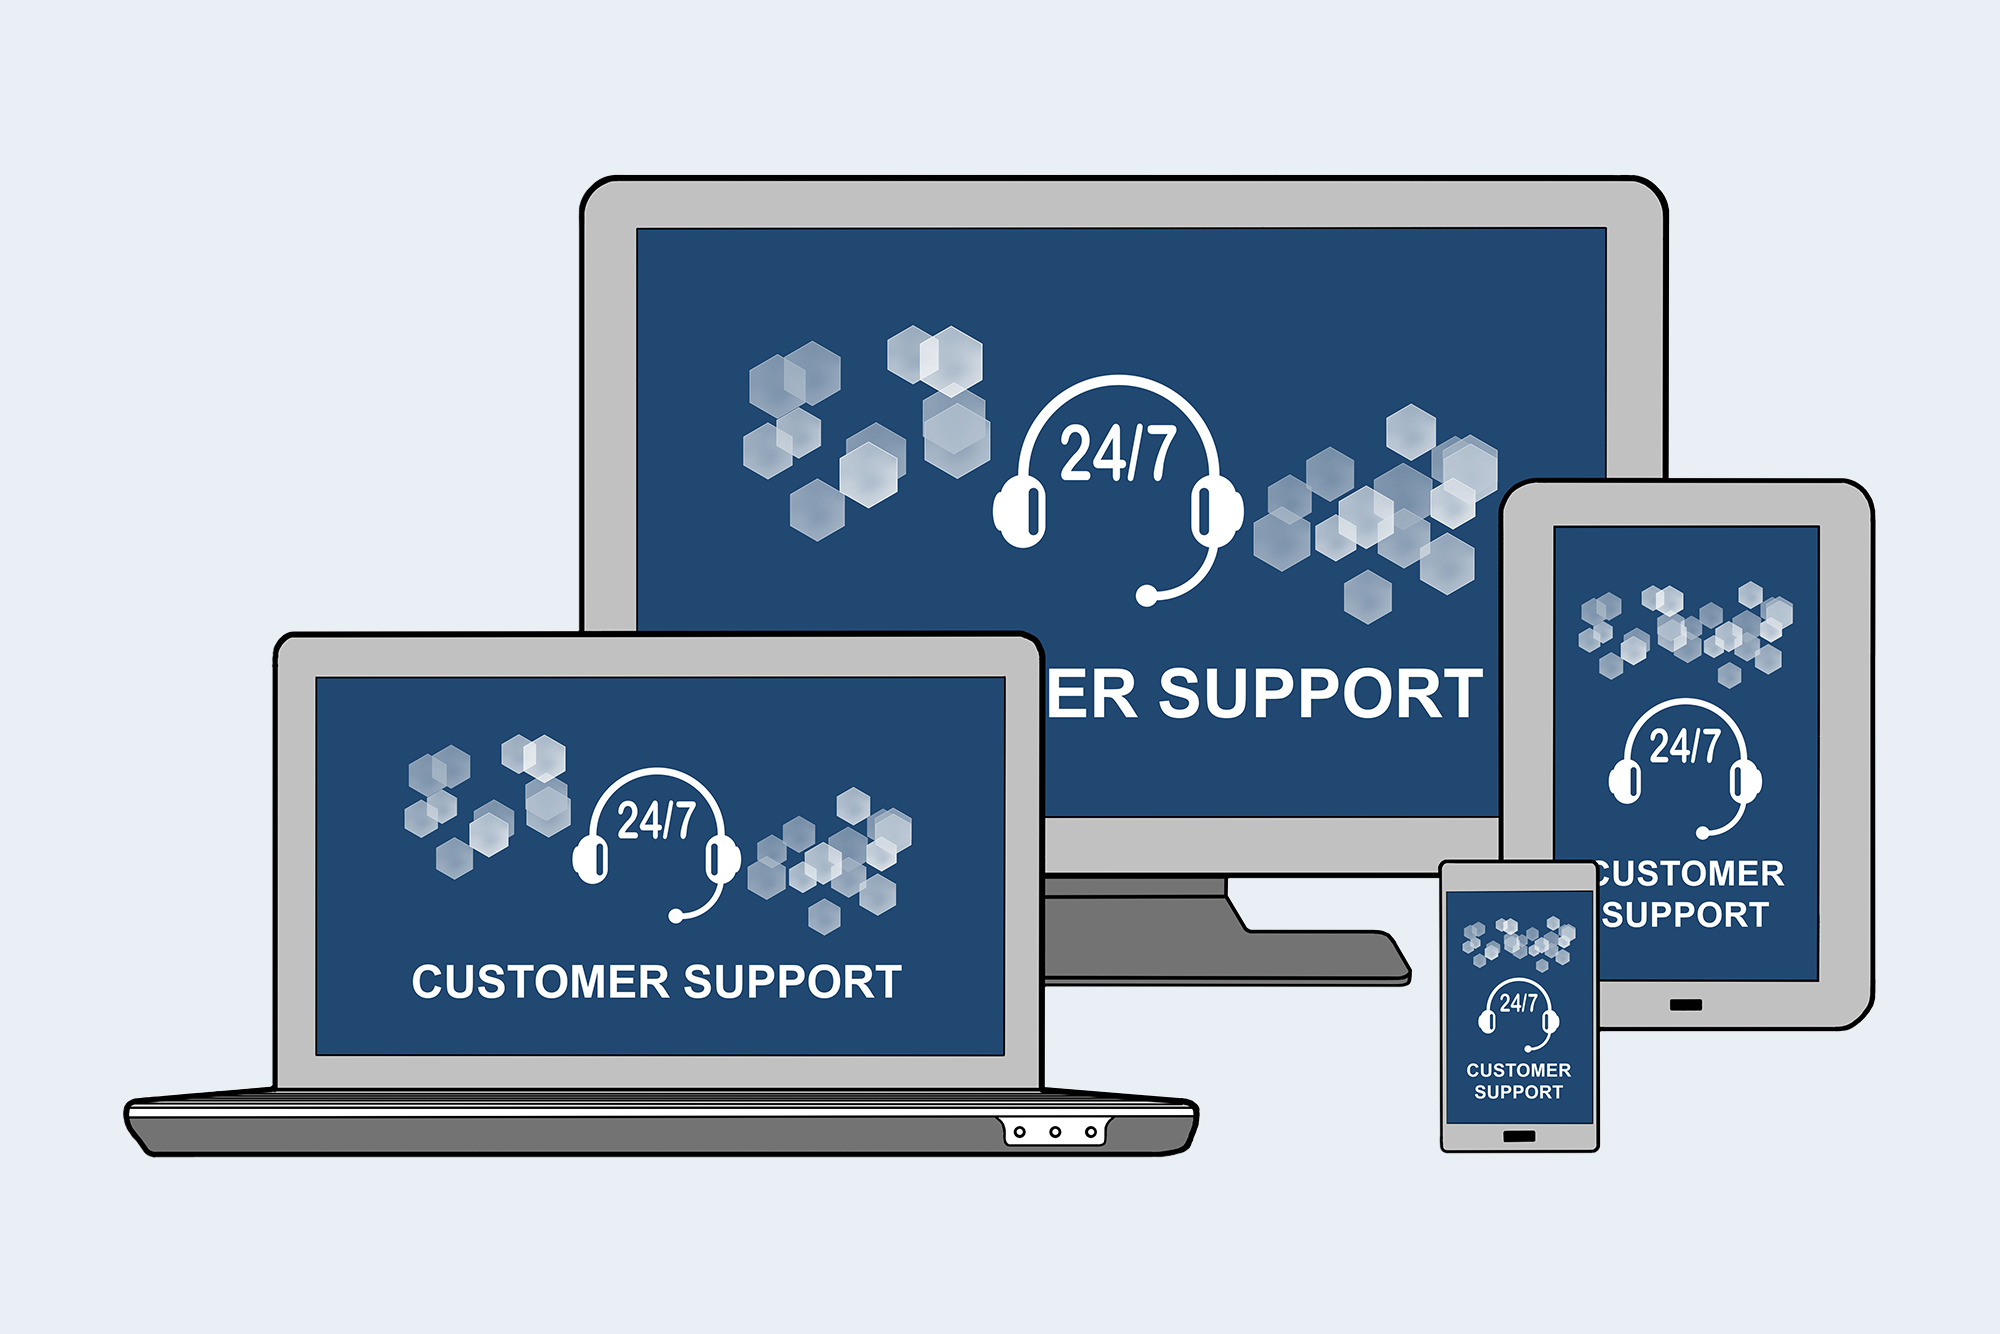 24/7 Customer Support image on multiple devices